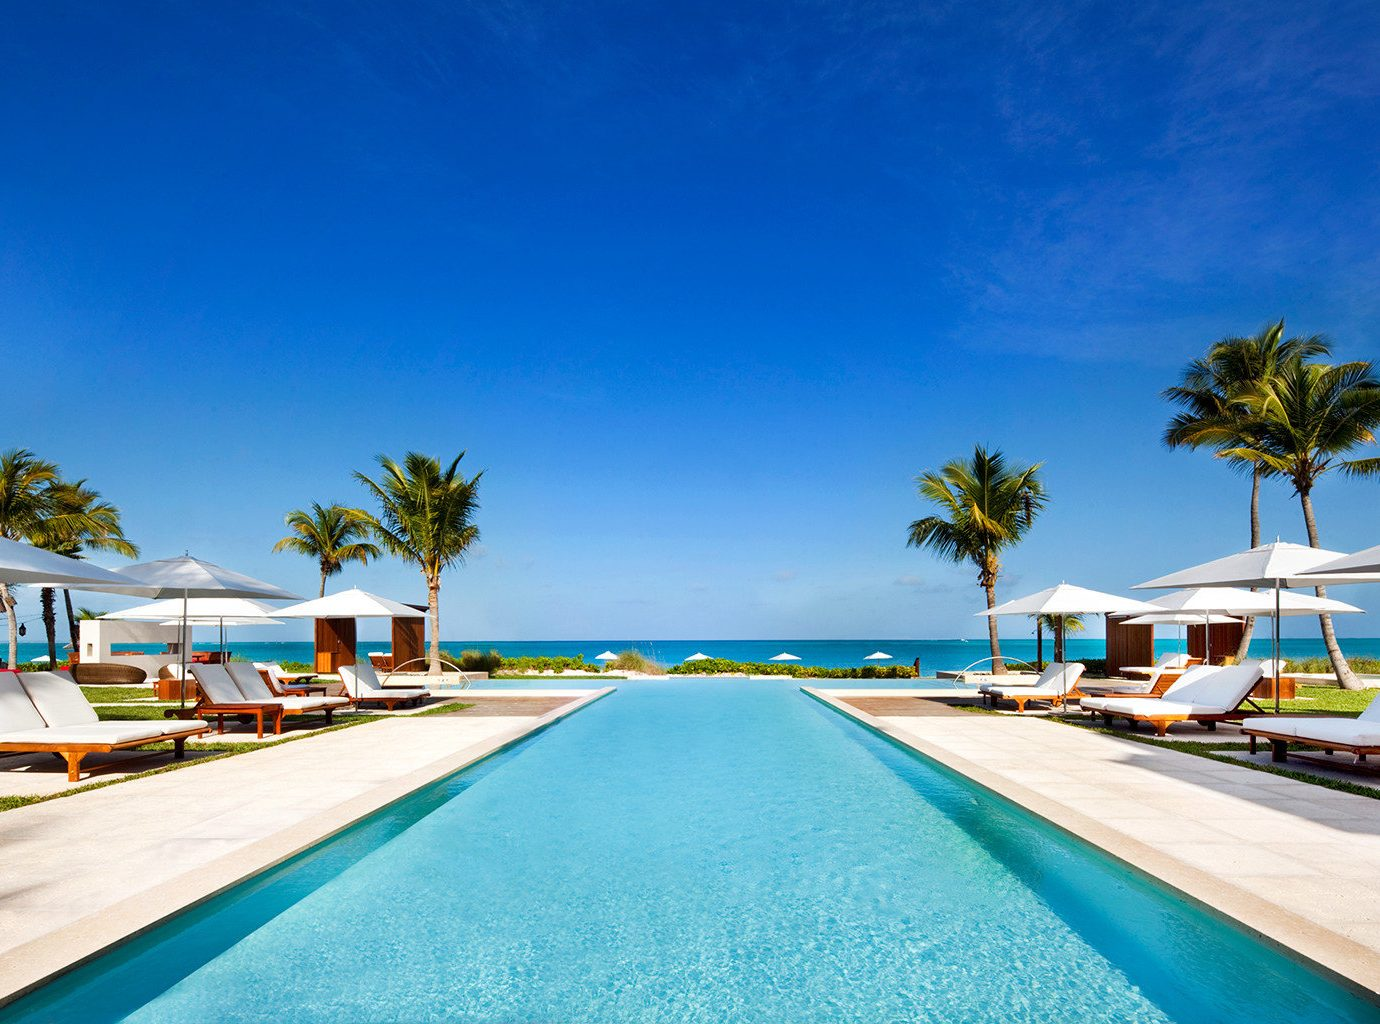 Beachfront Grounds Hotels Luxury Pool sky outdoor leisure swimming pool Beach vacation Resort Sea caribbean Ocean way bay marina estate Coast Lagoon dock colorful lined highway